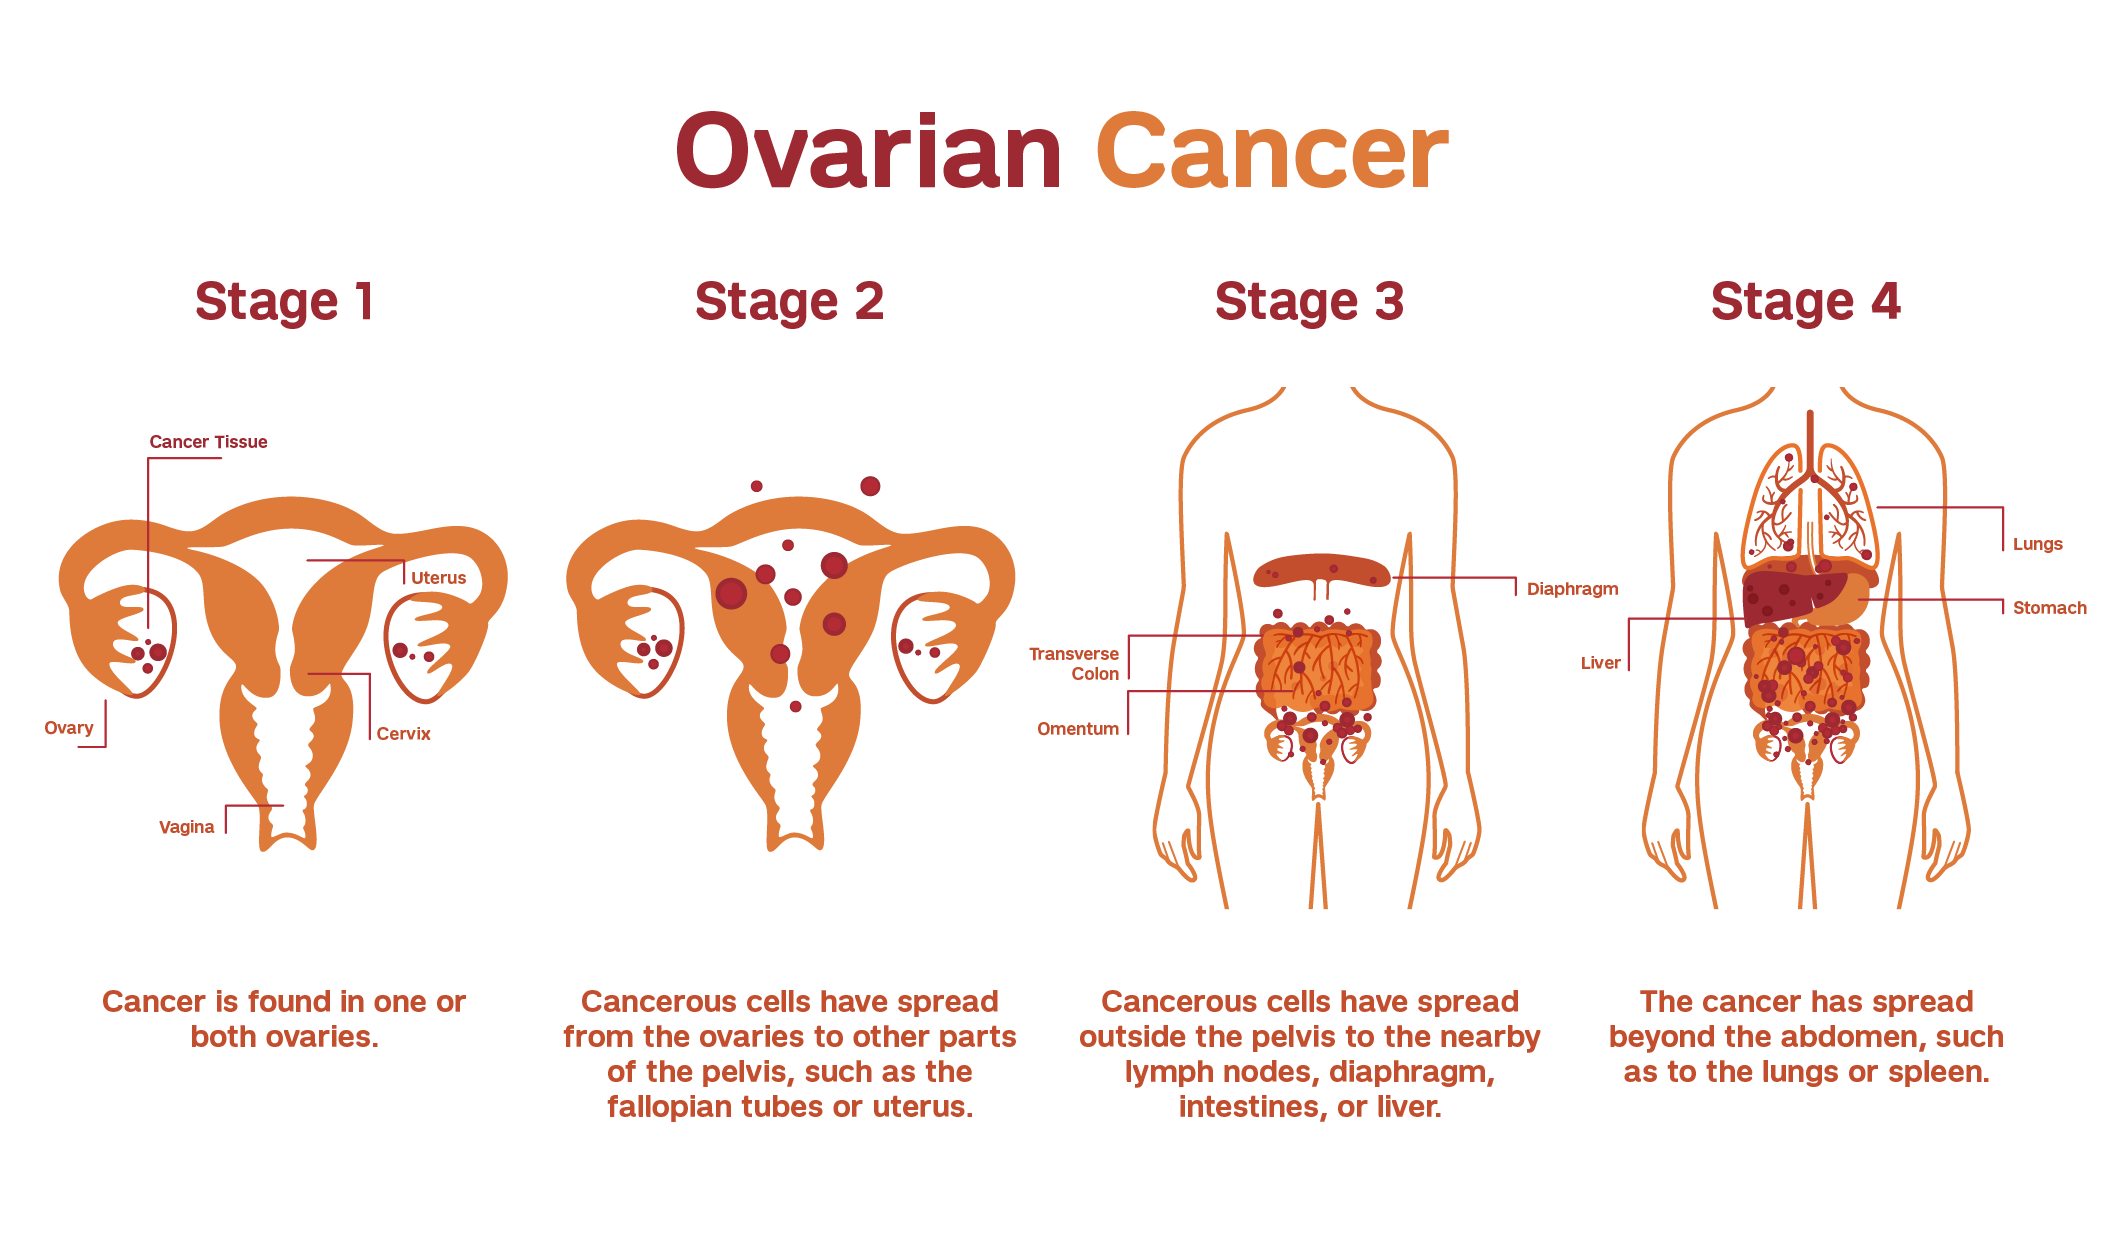 Illustration explaining the staging of ovarian cancer